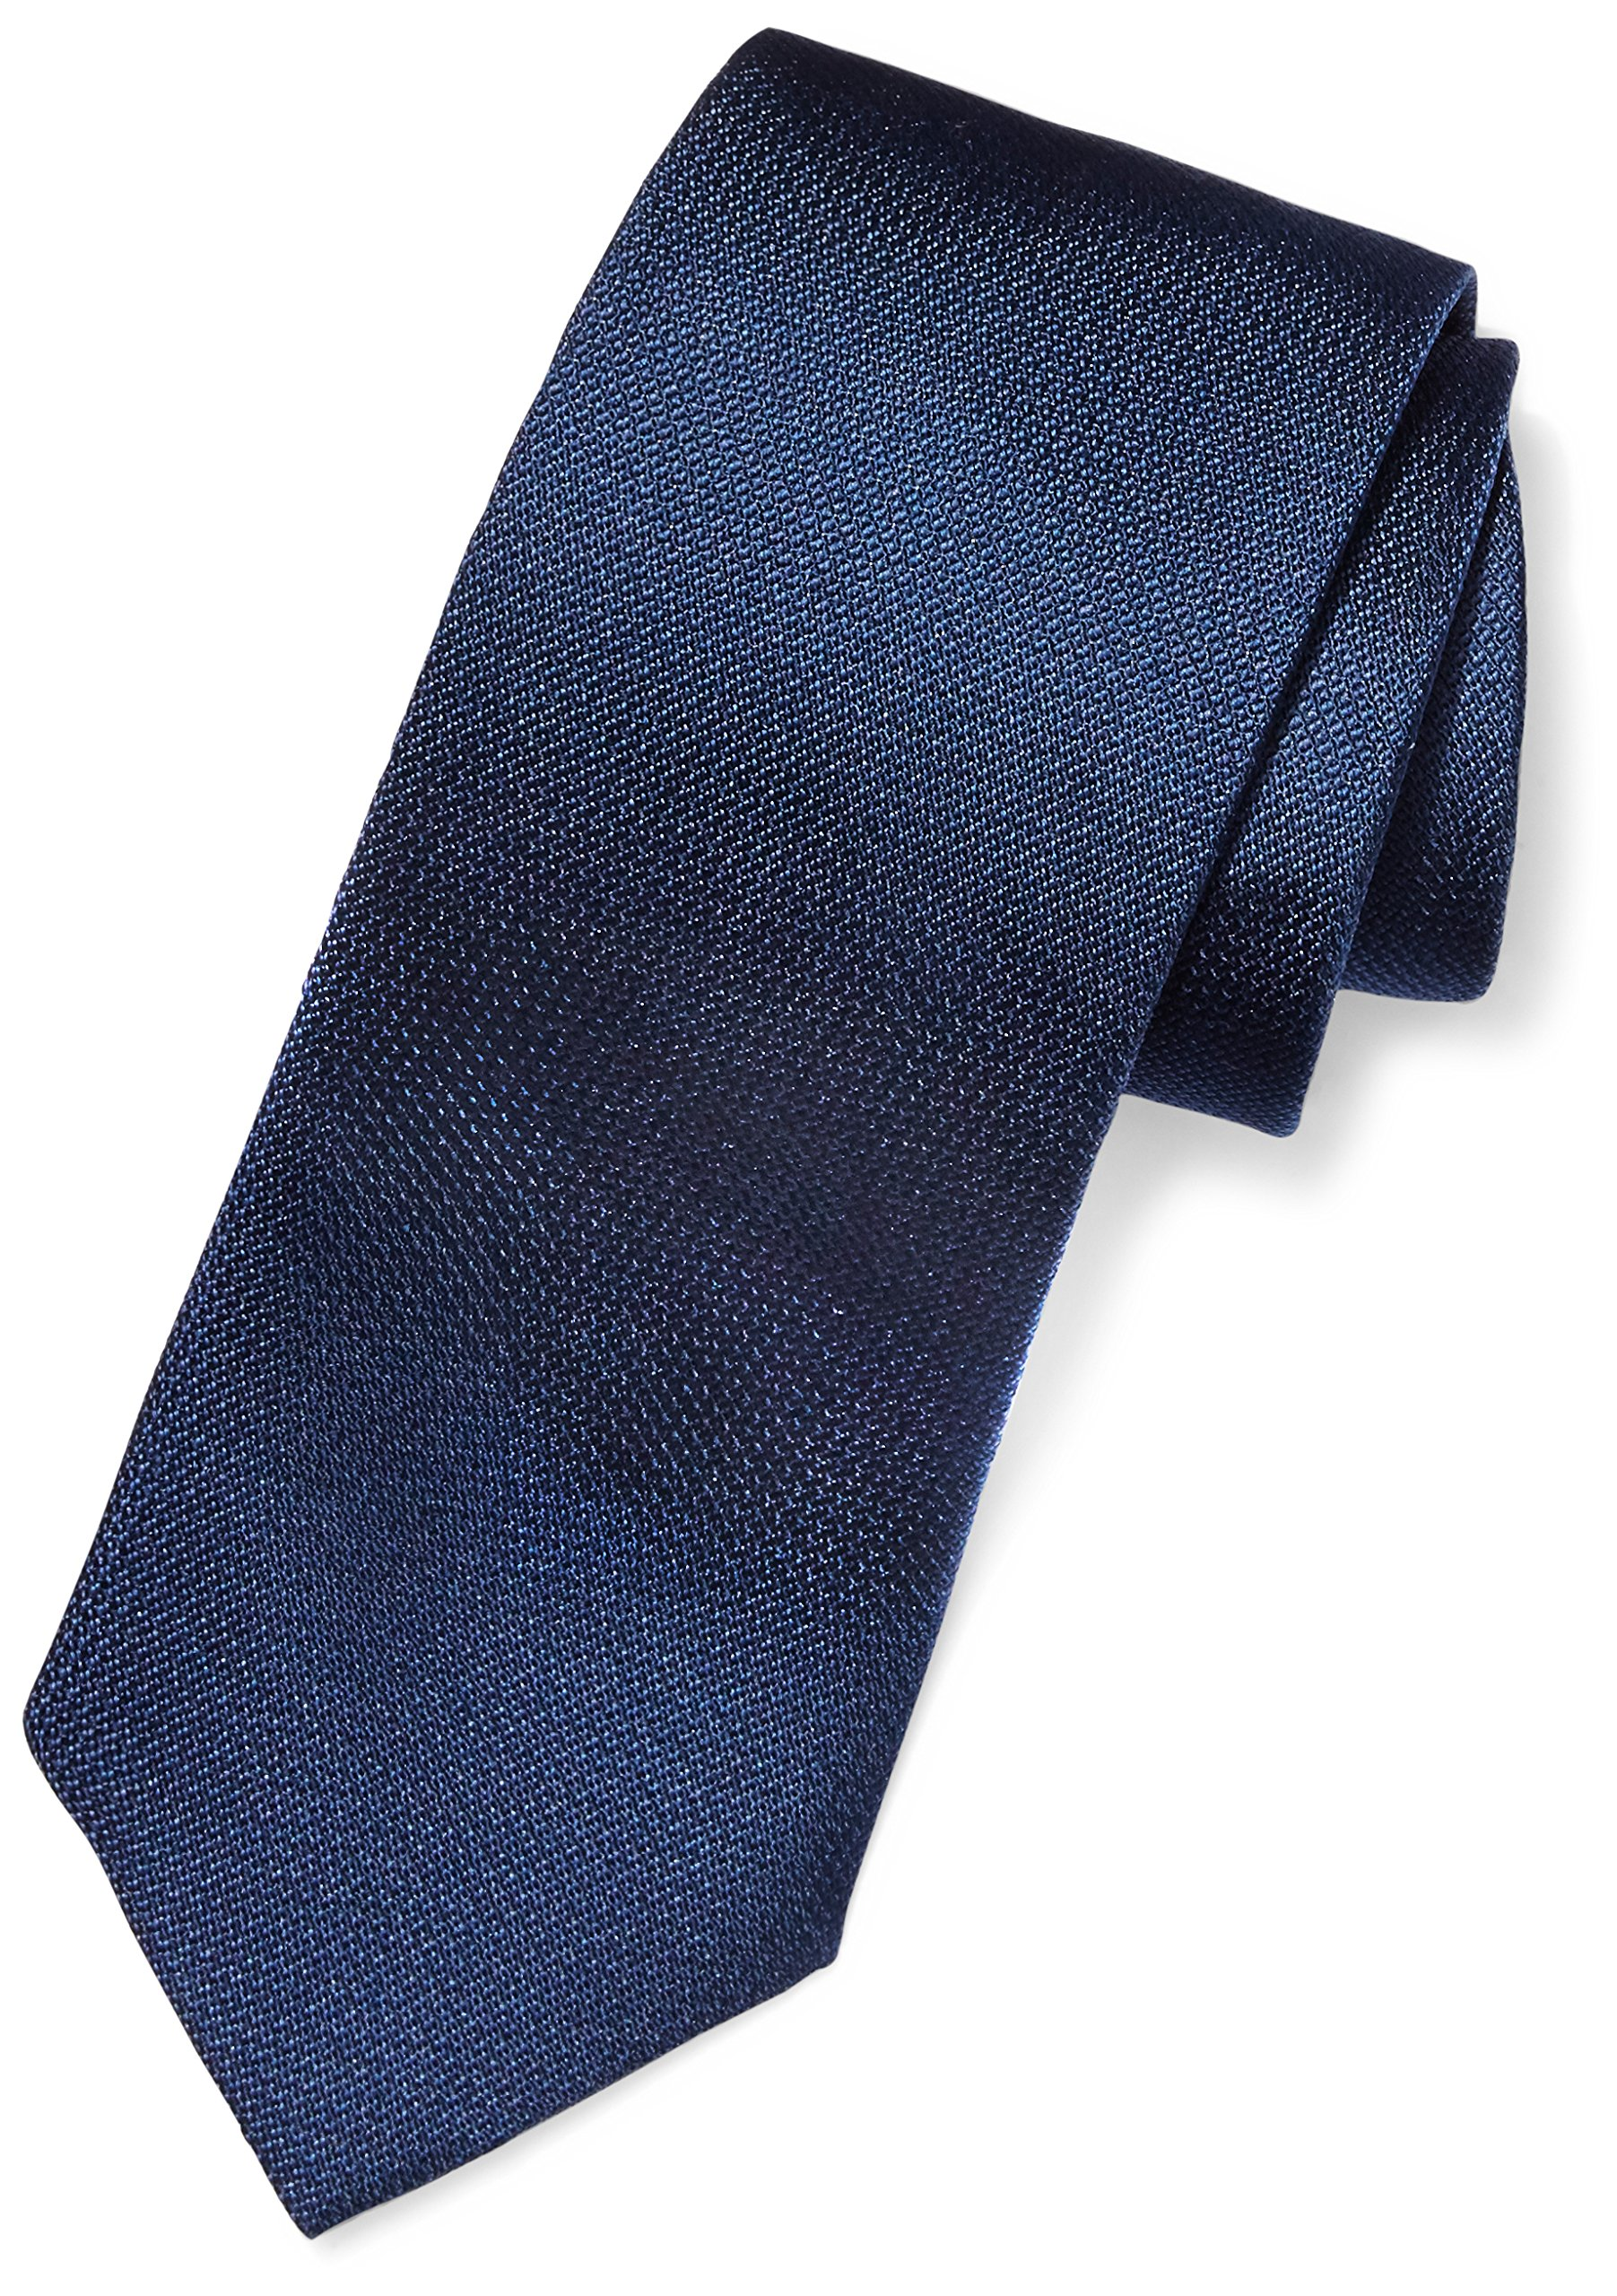 BUTTONED DOWN Men's Classic Silk 3'' Necktie, Navy Texture, Regular by Buttoned Down